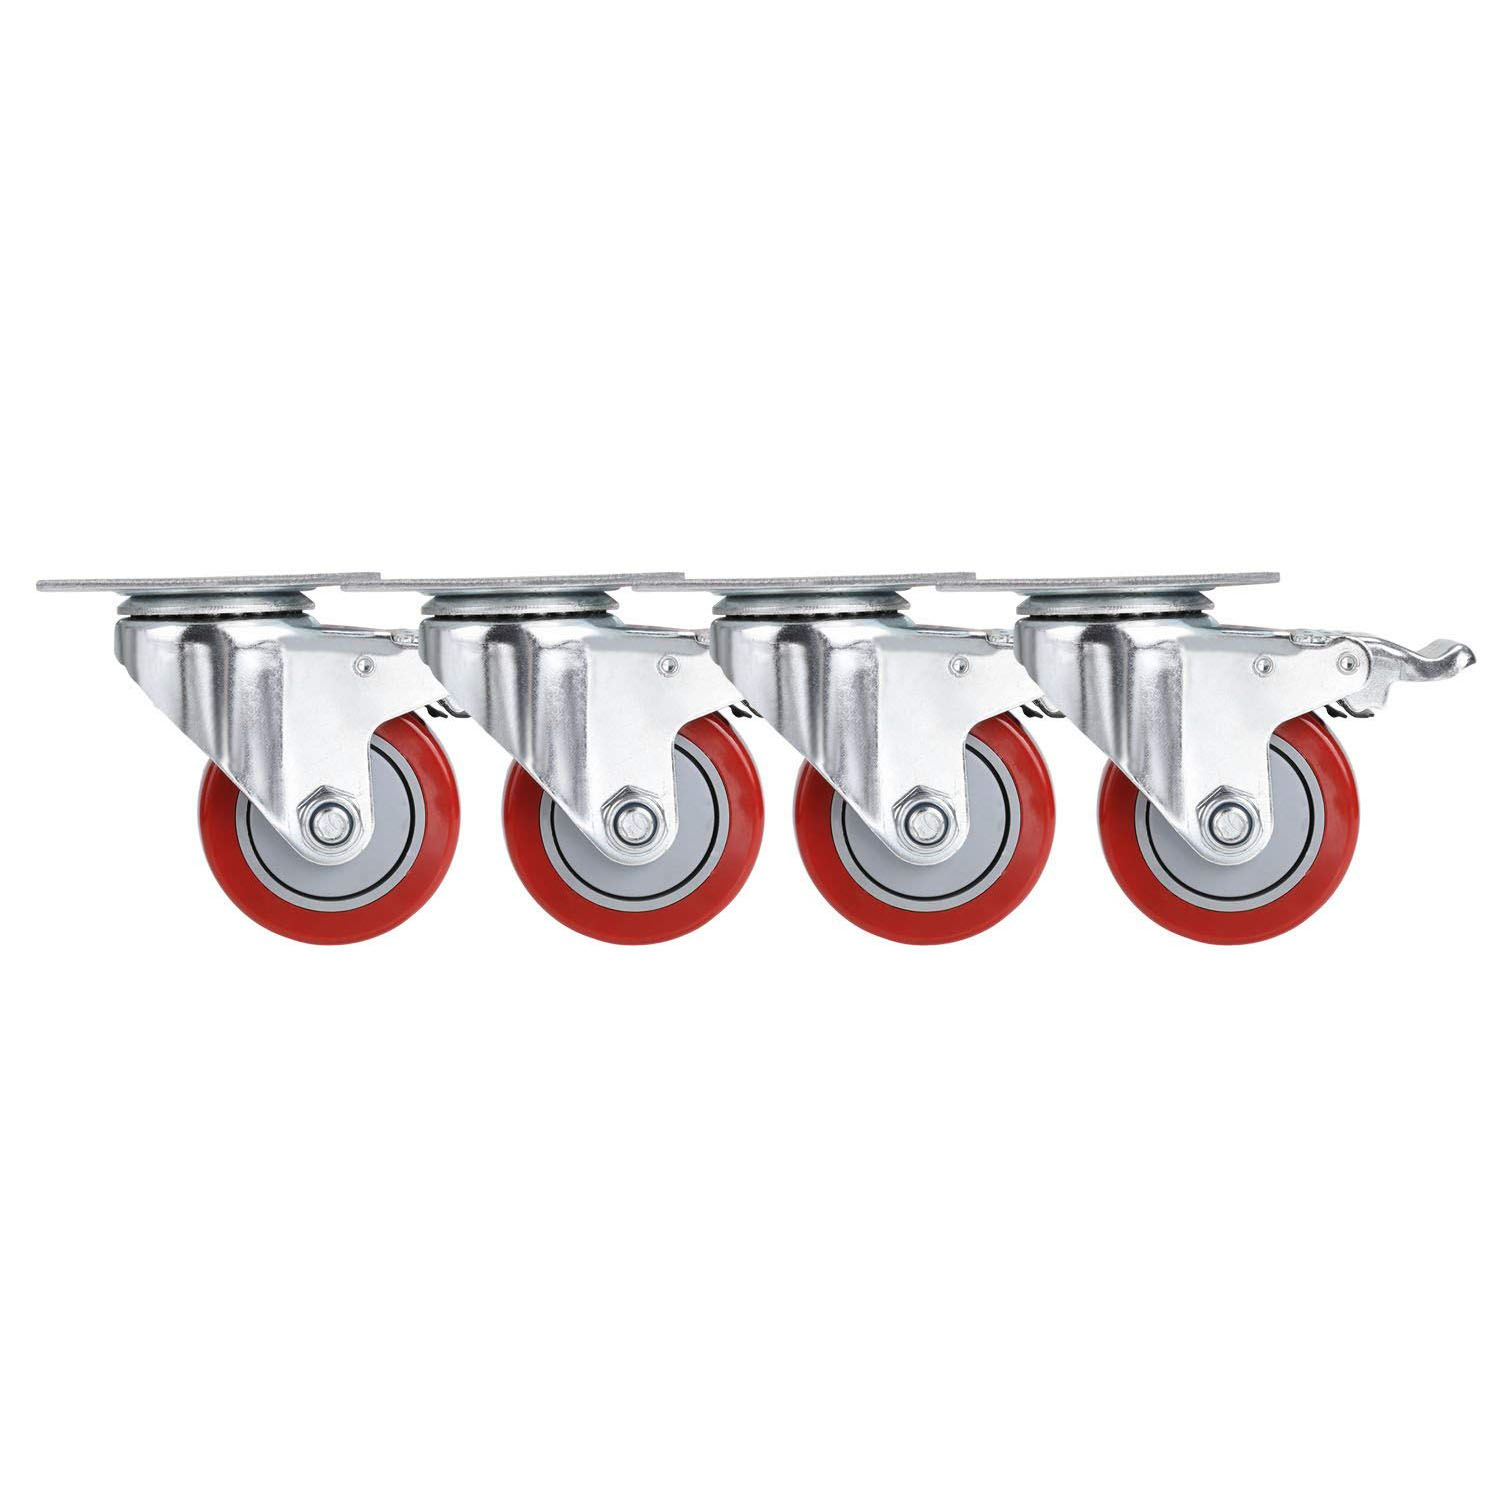 Useful 3 inch PVC Heavy Duty Swivel Caster Wheels 360 Degree Top Plate with Brake Pack of 4 (880Lbs) (red)Useful 3 inch PVC Heavy Duty Swivel Caster Wheels 360 Degree Top Plate with Brake Pack of 4 (880Lbs) (red)